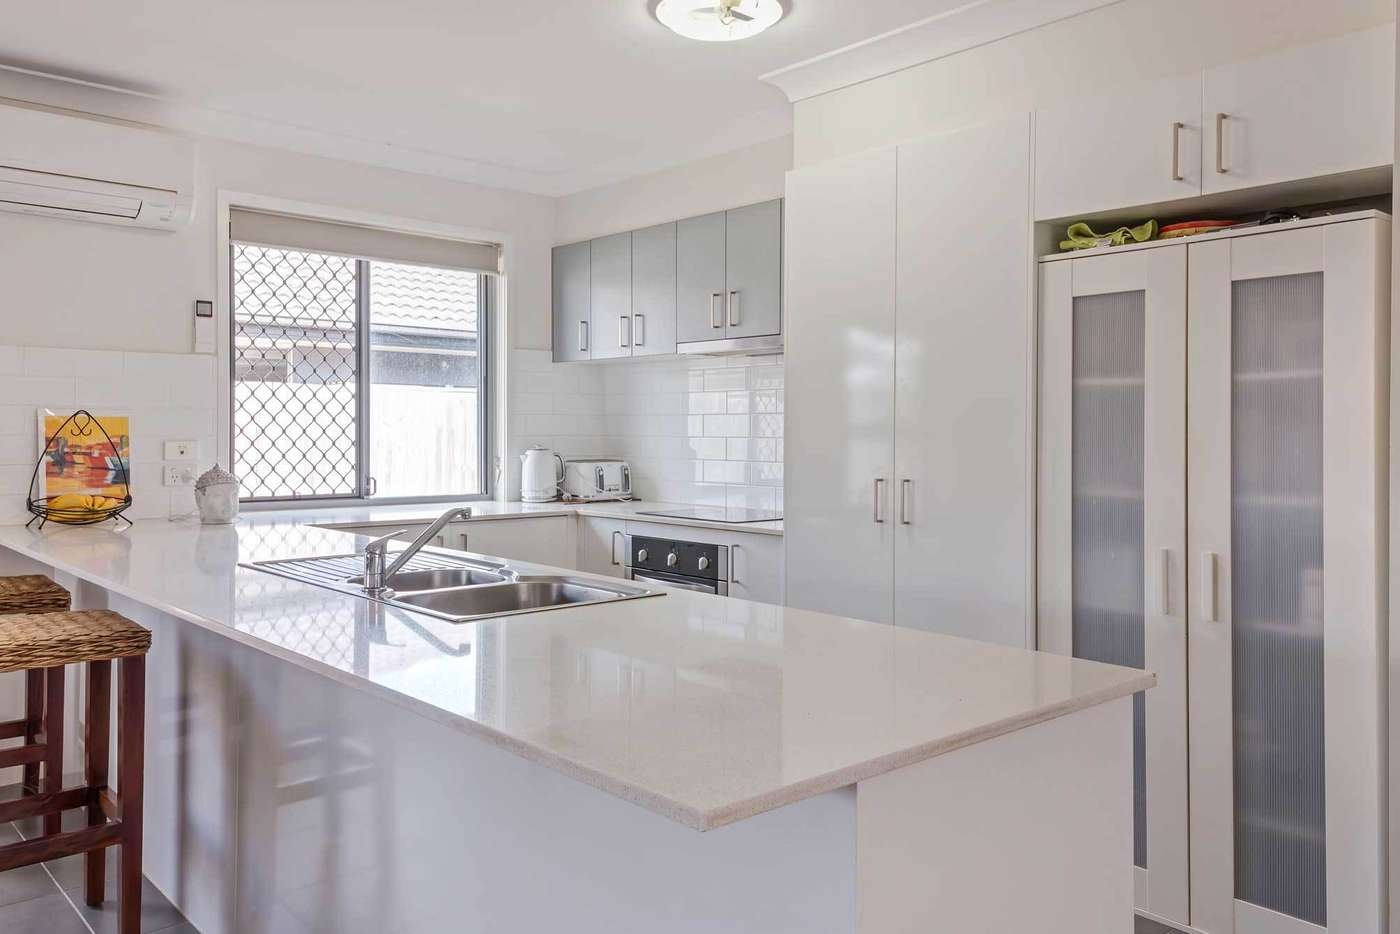 Main view of Homely house listing, 8 Emerson Road, Bannockburn QLD 4207